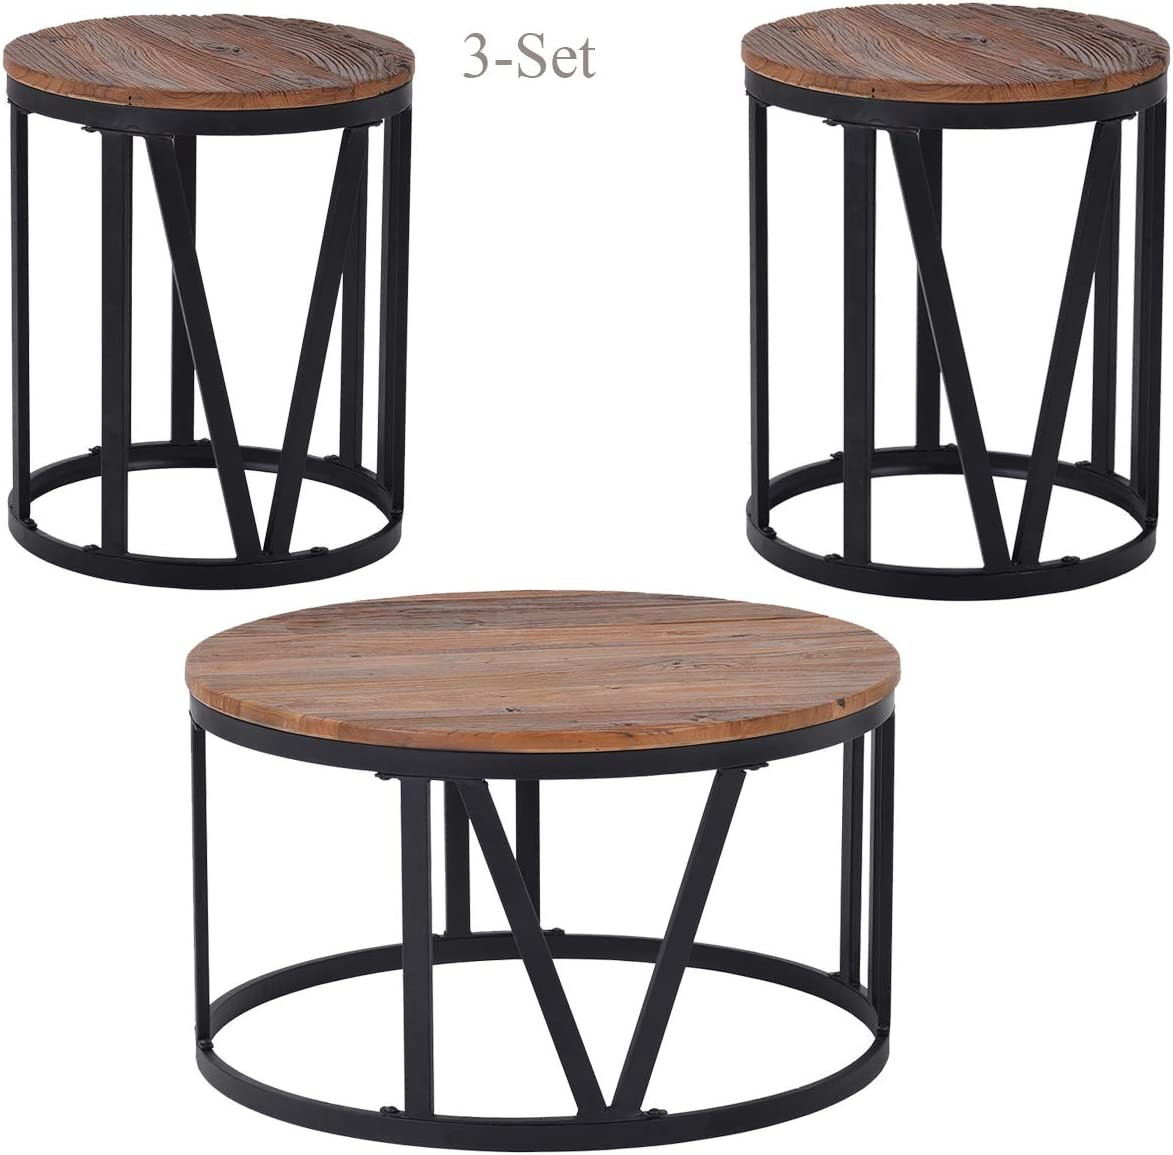 Amazon Com Wood Coffee Table Set 3 Piece Rustic Round Coffee